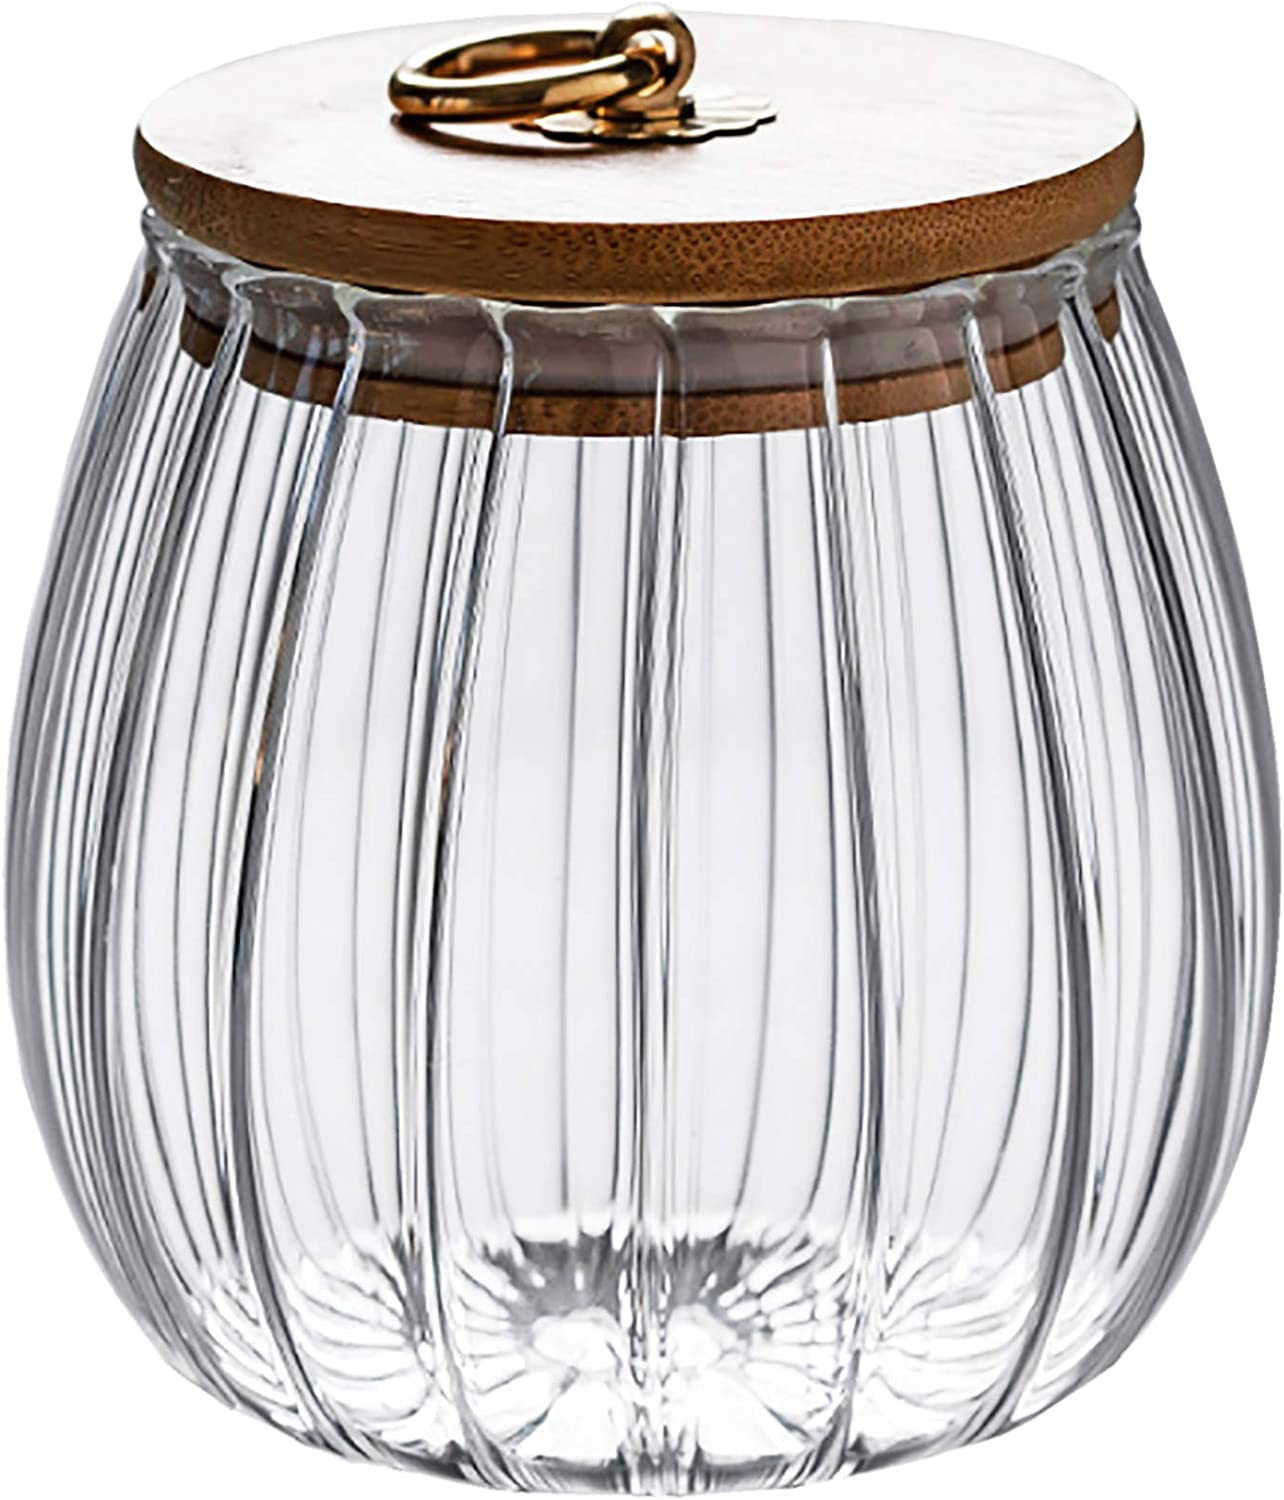 Glass Coffee Tea Canister Airtight Sotrage Jar Petal Decorative Container with Bamboo Lid Metal Handle Easy to Grasp 700ml (23oz)